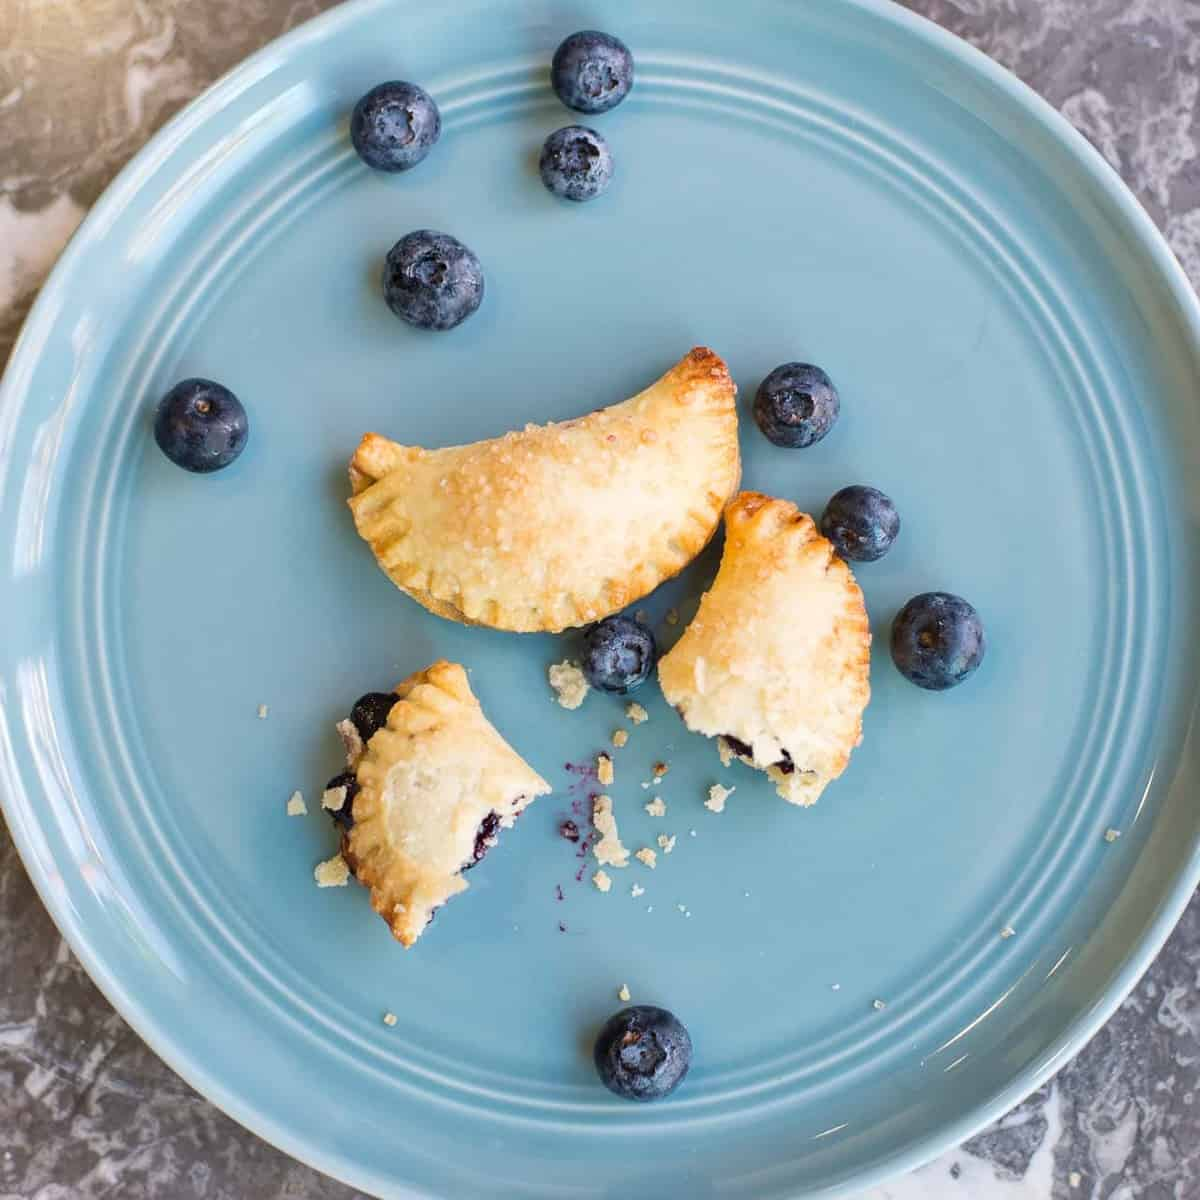 two blueberry hand pies with homemade blueberry filling